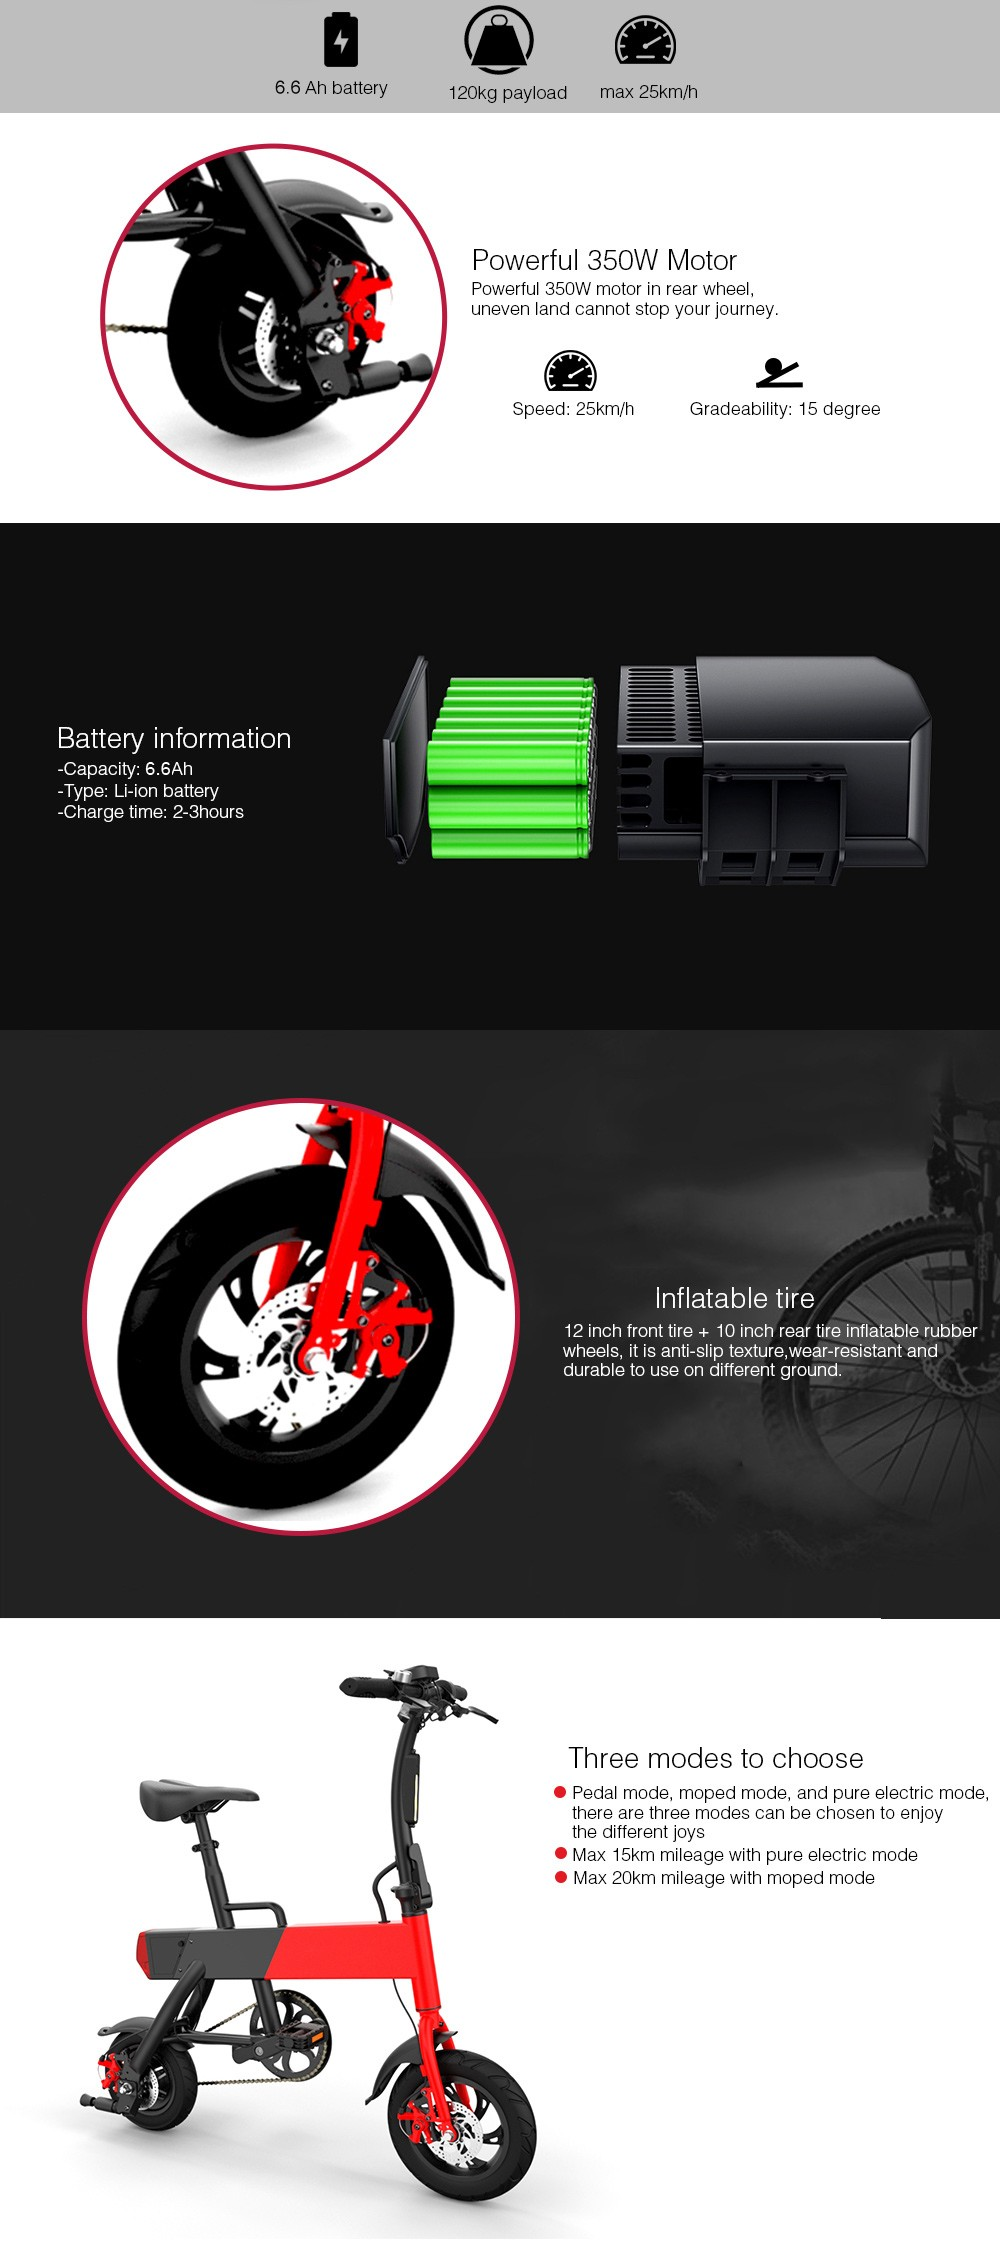 DoubleHunter P12 + Smart Folding Bike Electric Moped Bicycle 6.6Ah Battery / with Double Disc Brake- Red US